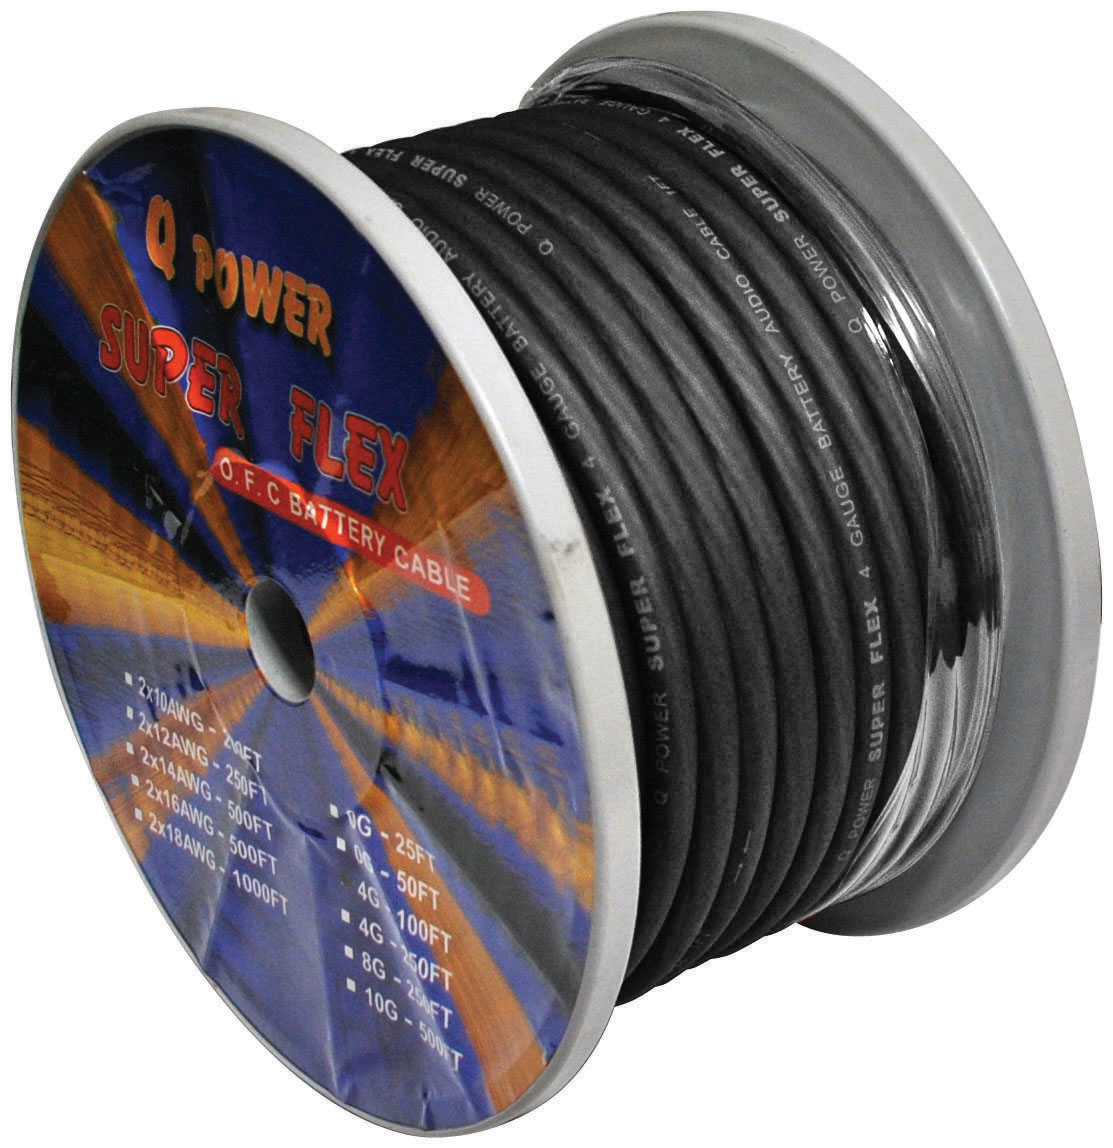 POWER WIRE 4GA. 100' BLACK QPOWER